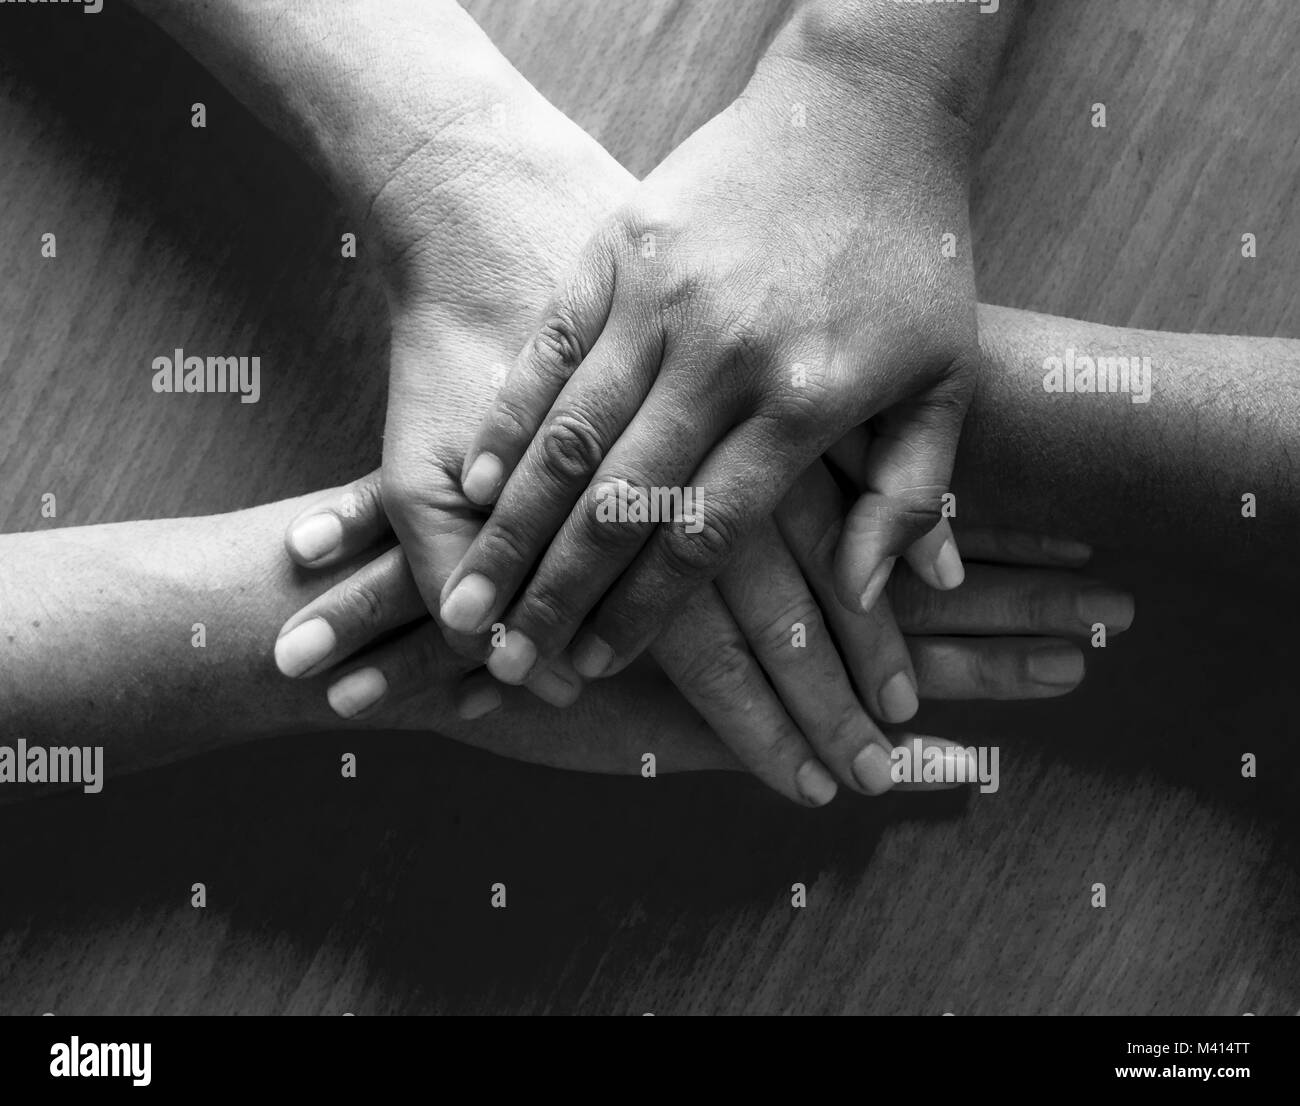 looking down on four fifty year old female hands placed ontop of each other, the top hand and third hand are Asian - Stock Image